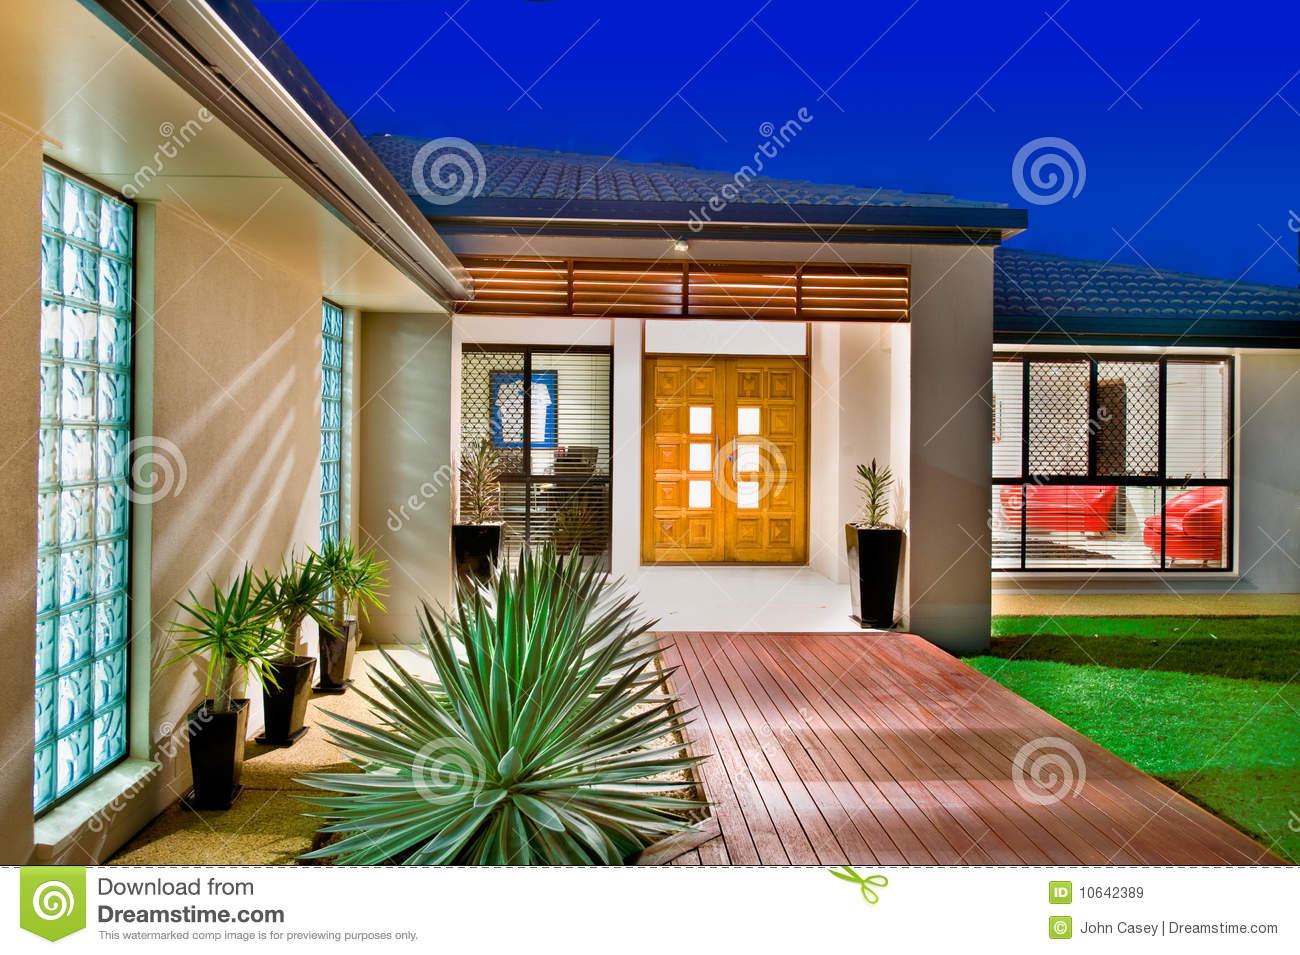 Luxury home with wooden doors royalty free stock images for Free luxury home images